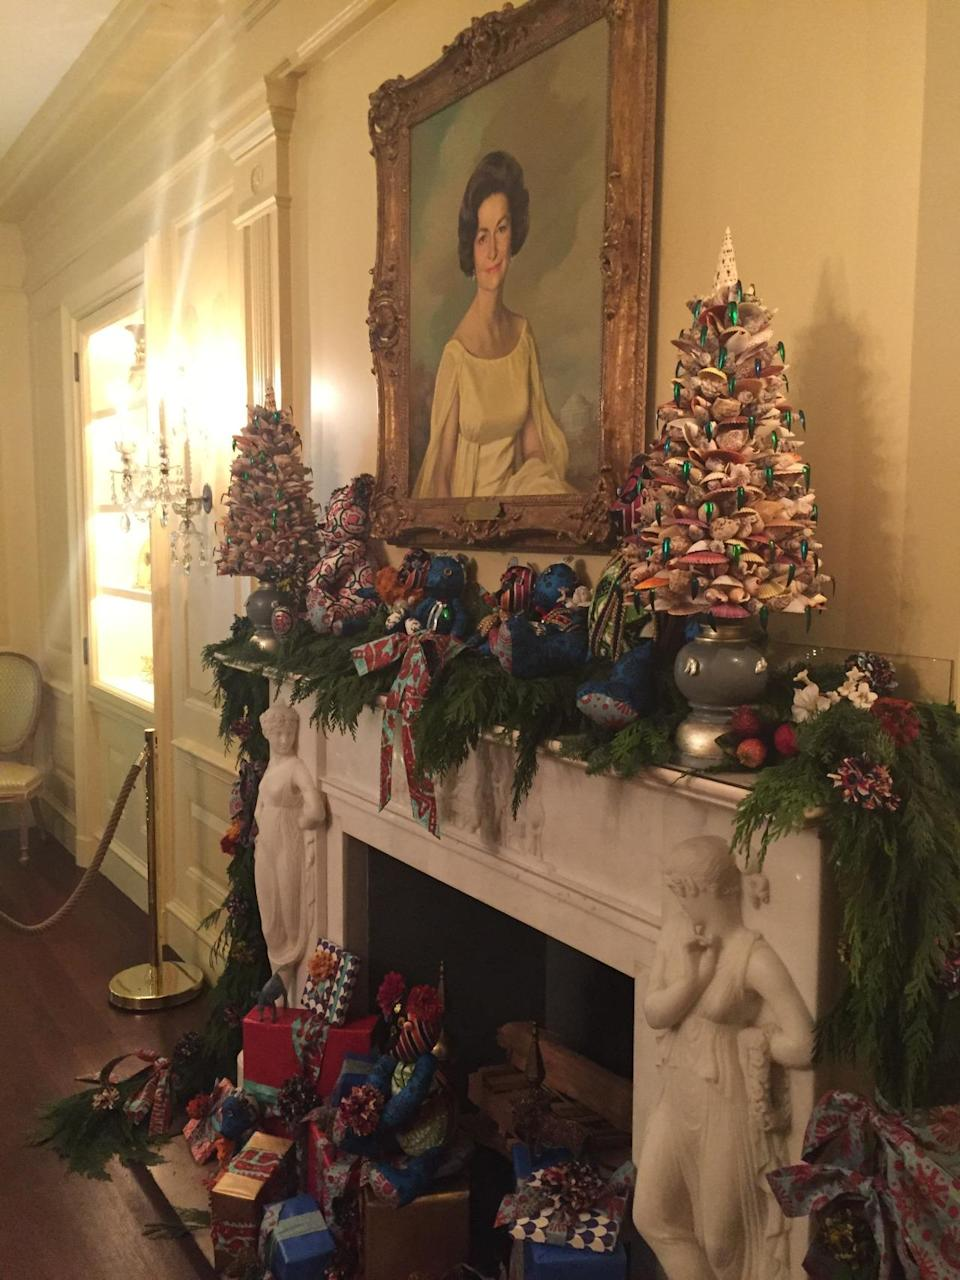 <p>Decorated by Nigerian-born designer Duro Olowu, teddy bears made of vintage fabric share the mantle with trees made of seashells. First lady Lady Bird Johnson's portrait is a focal point of the display. <i>(Photo: Cassie Carothers)</i></p>